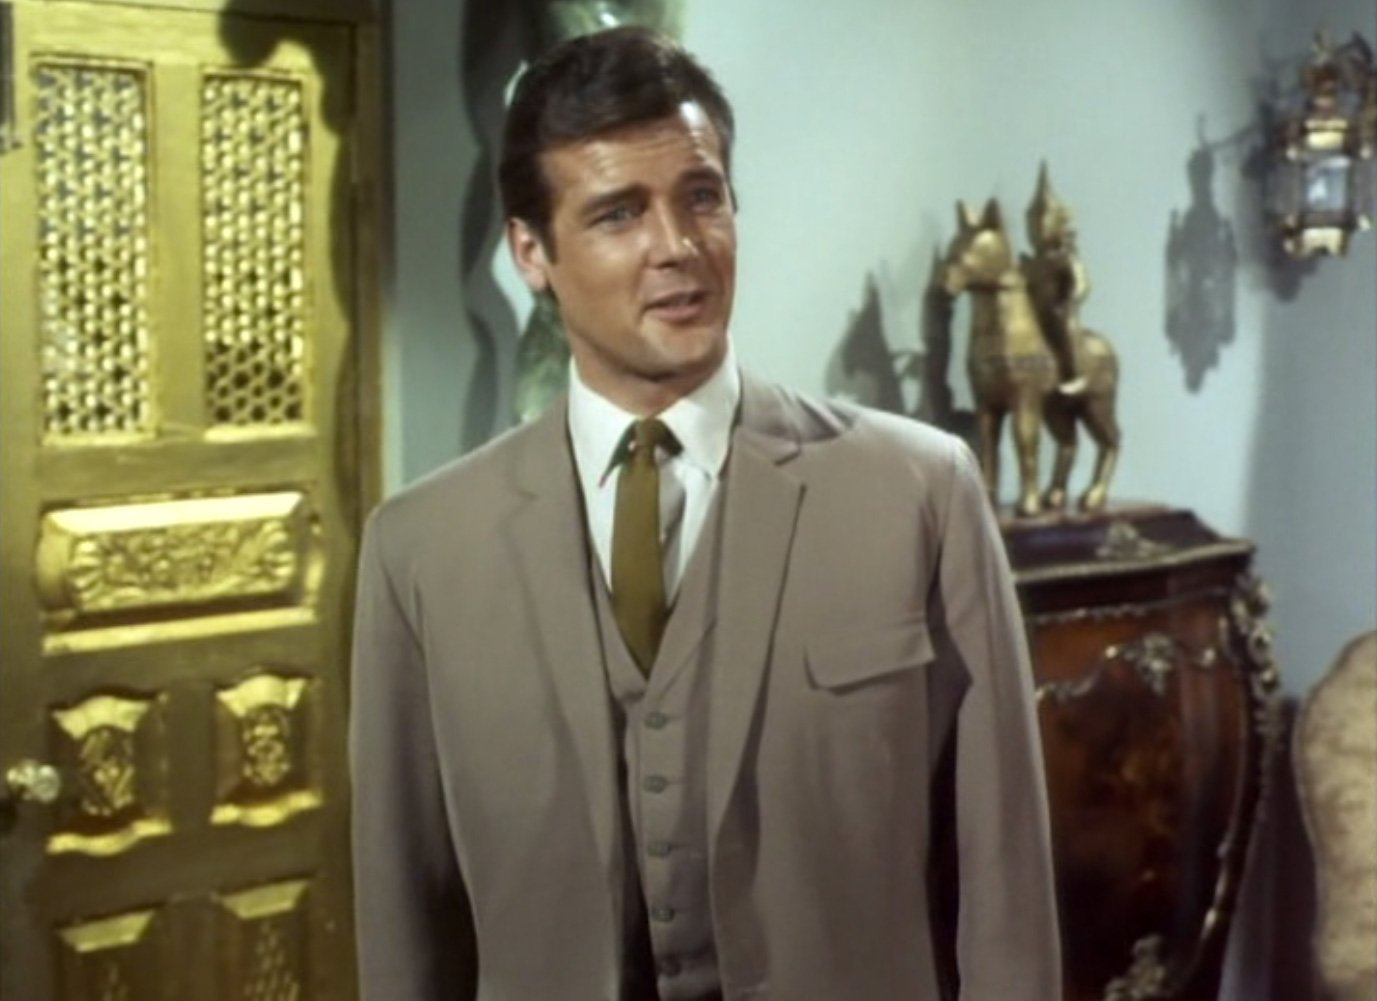 The Saint: The Light Brown Three-Piece Suit – The Suits of James Bond